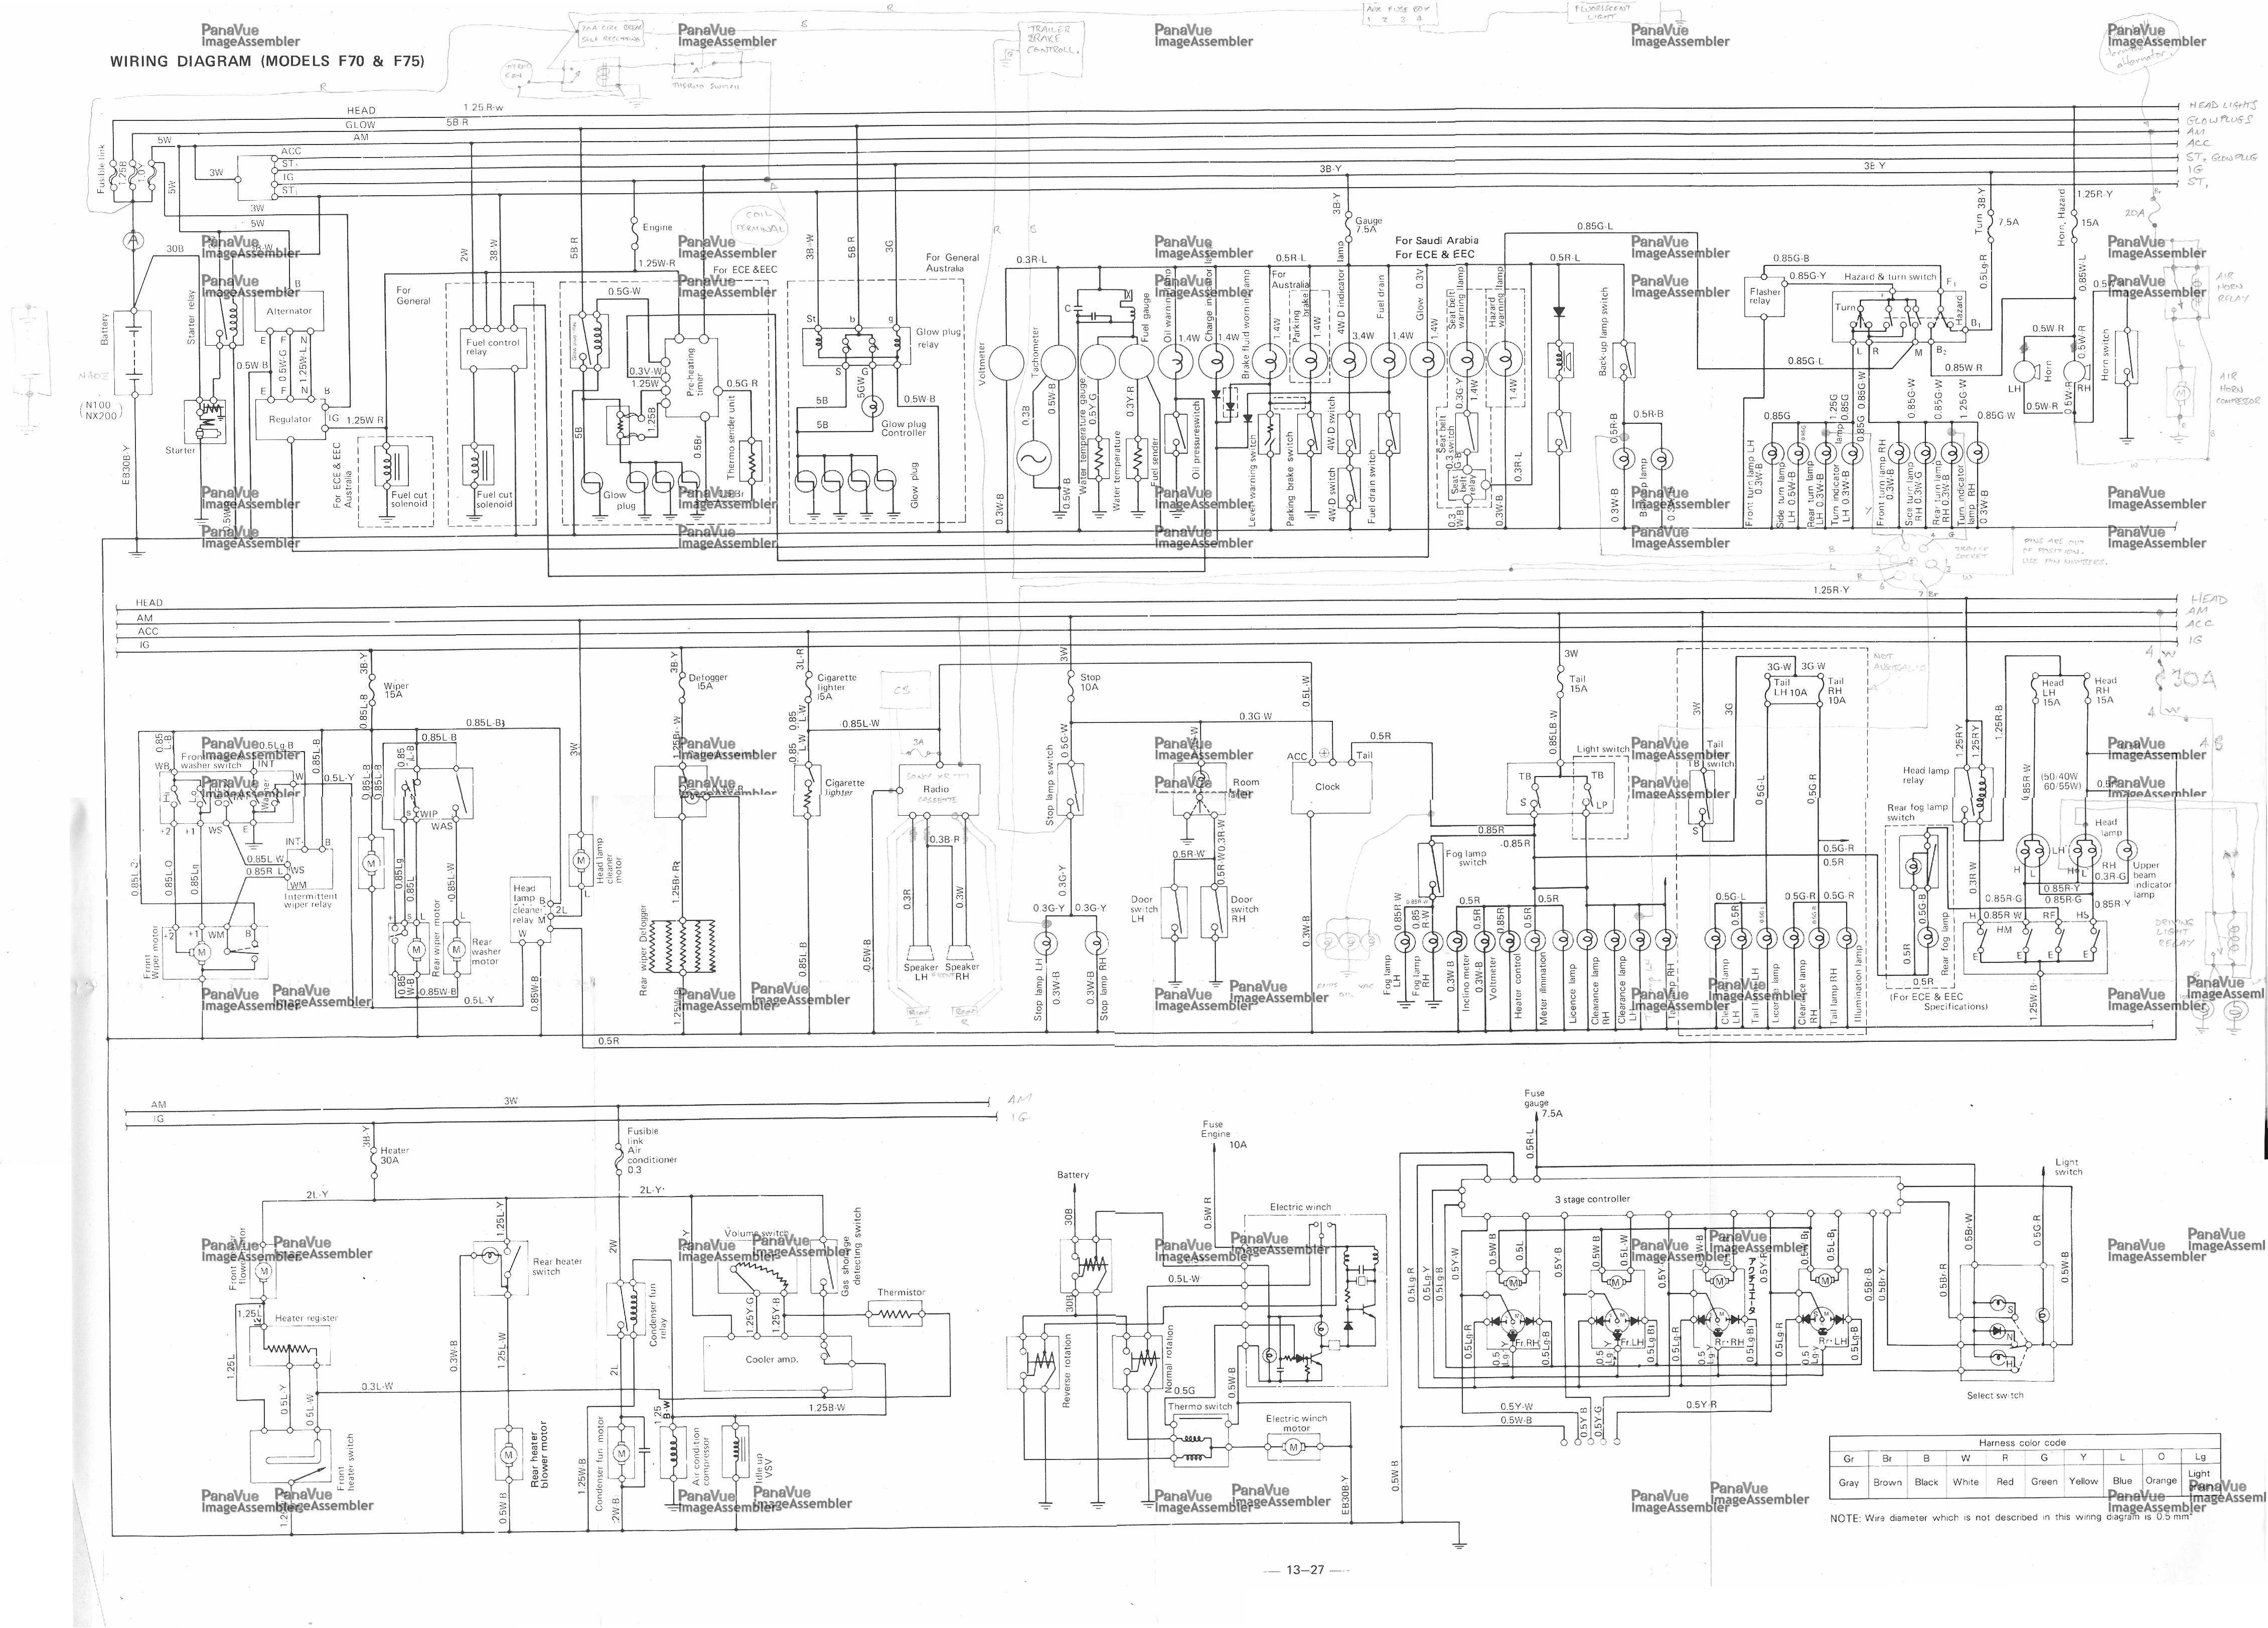 2010 goldwing fuse box wiring diagramgl1800 fuse diagram wiring diagram online2010 goldwing fuse box 9 1 ms krankenfahrten de \\\\